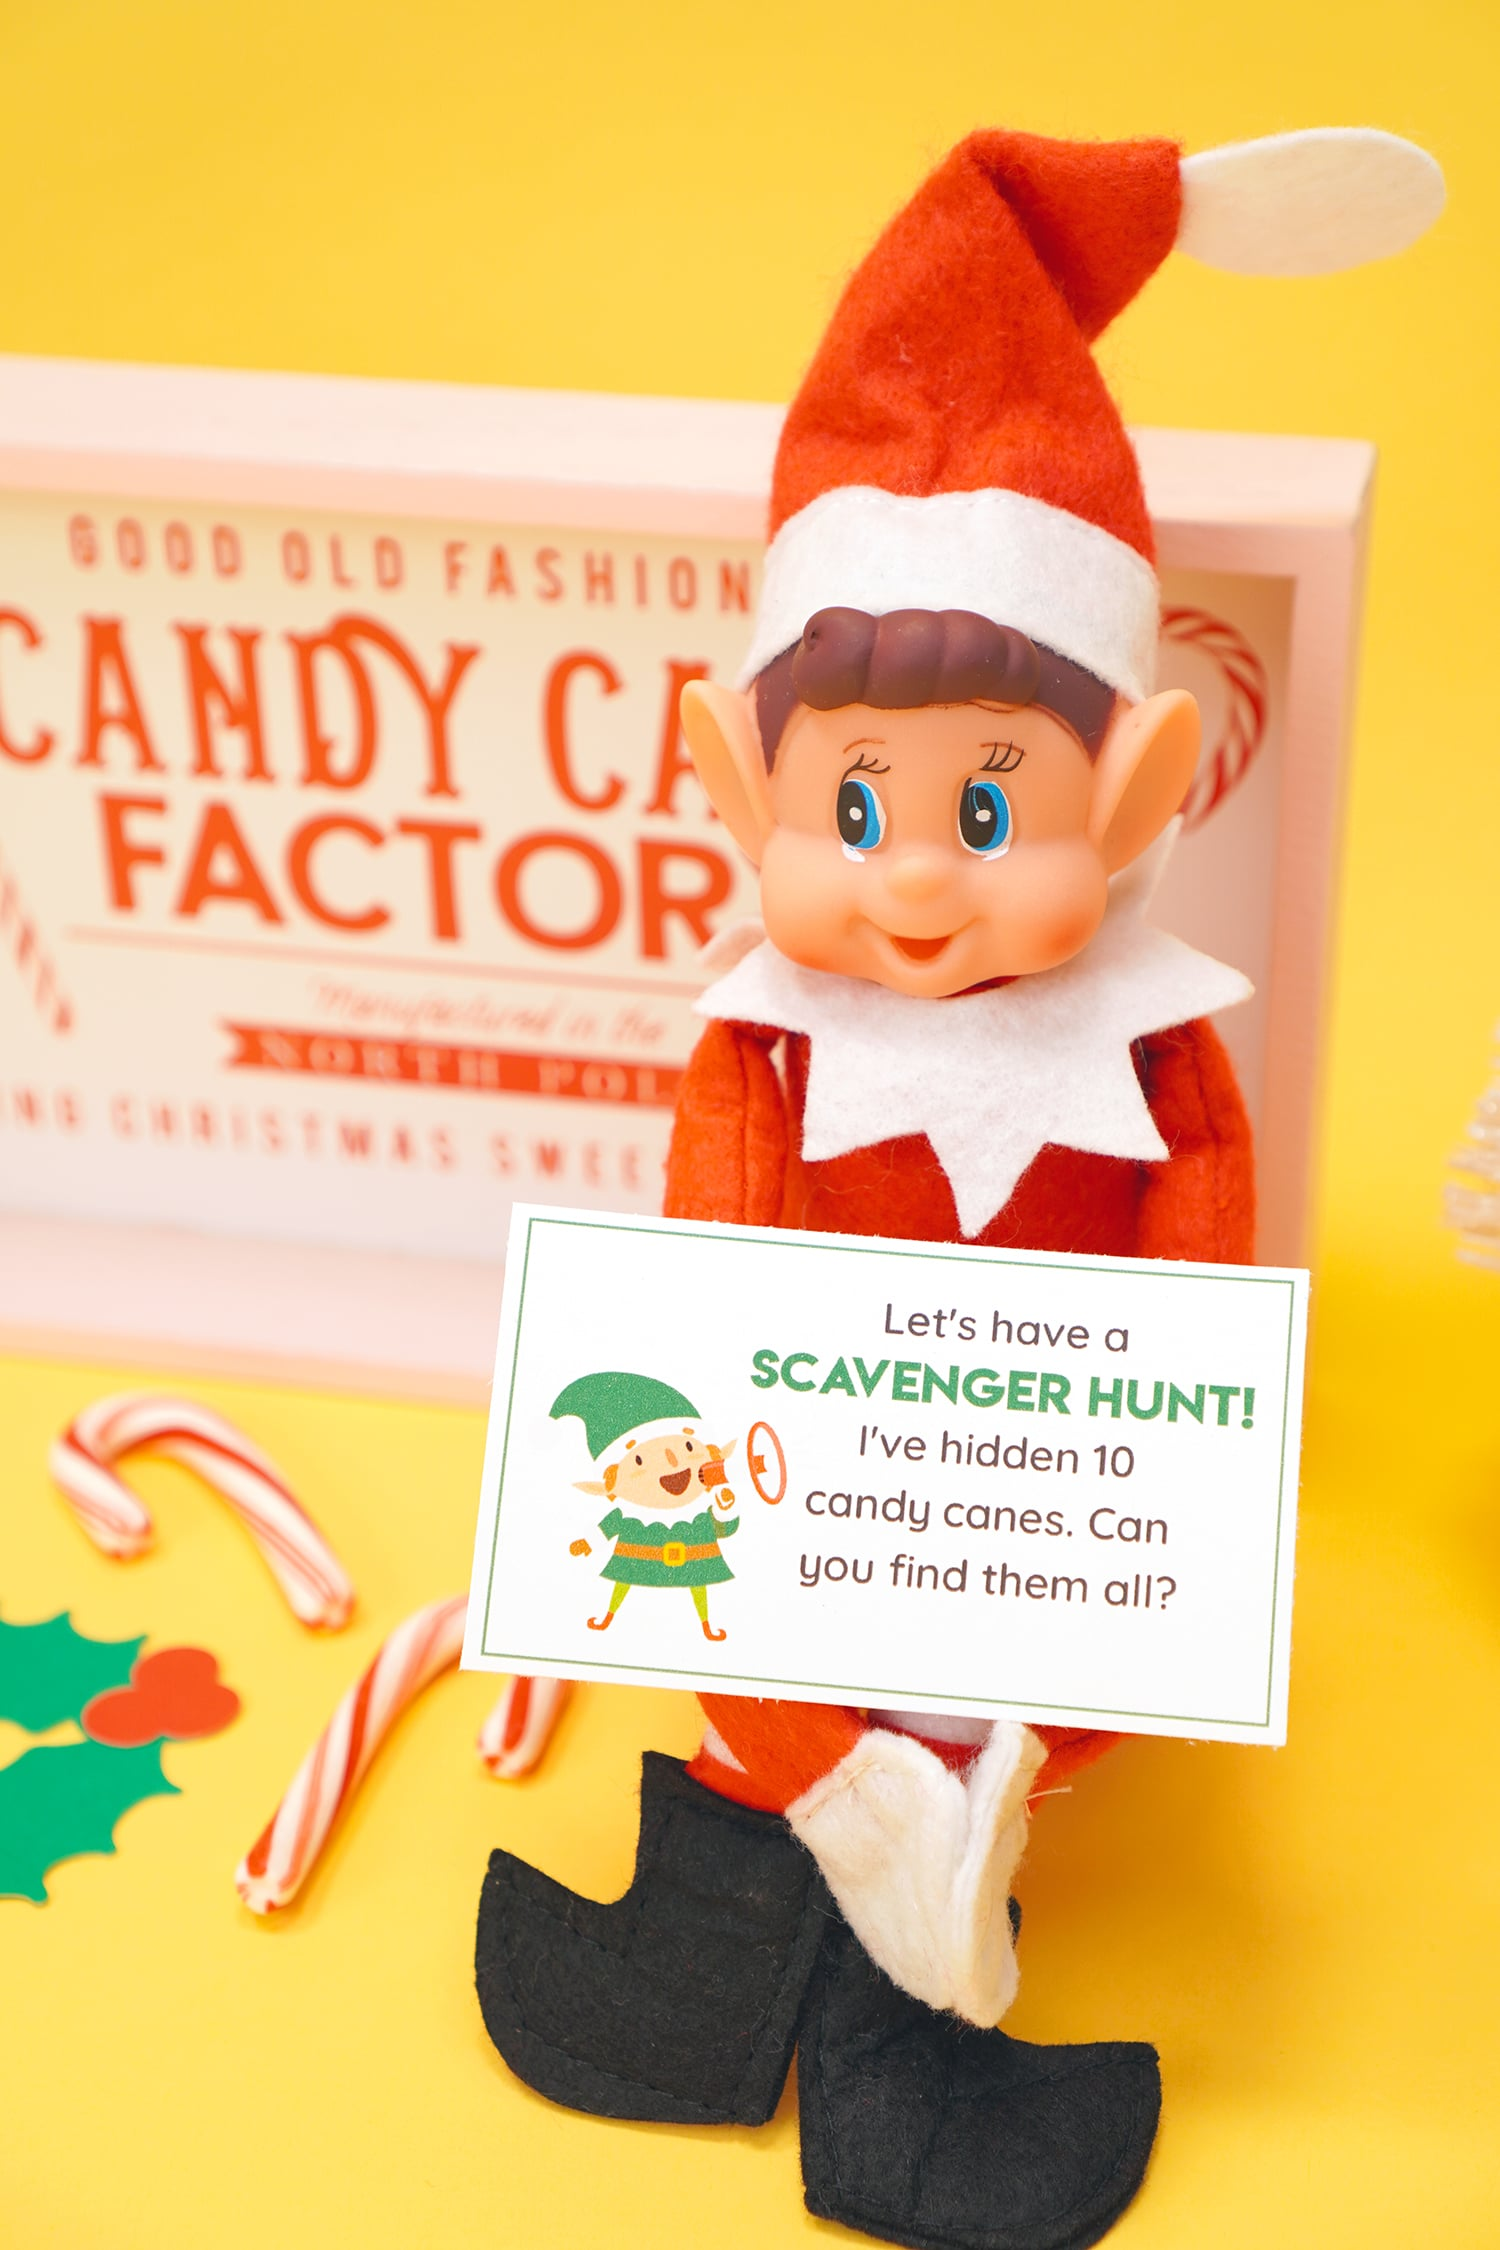 Elf doll on a yellow background holding a printed Elf on the Shelf scavenger hunt note card and candy canes and Christmas decorations in the background.